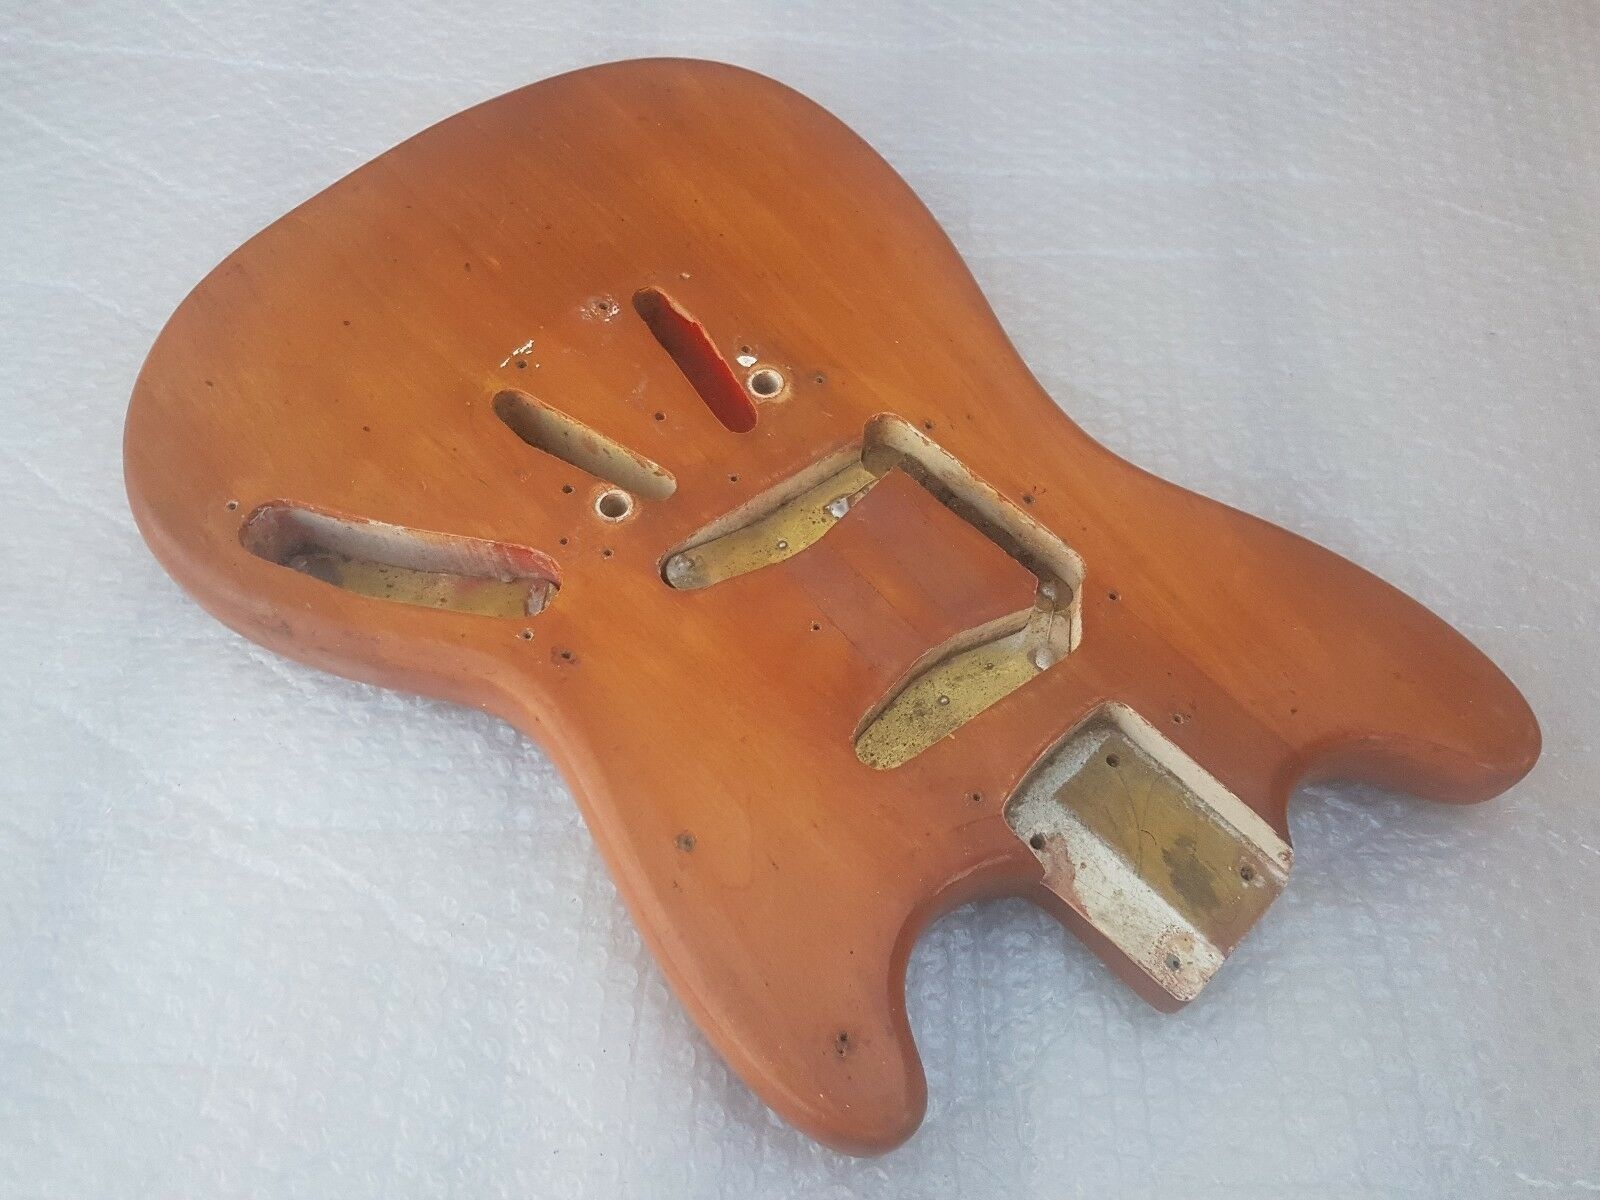 1965 FENDER MUSTANG BODY - made in USA